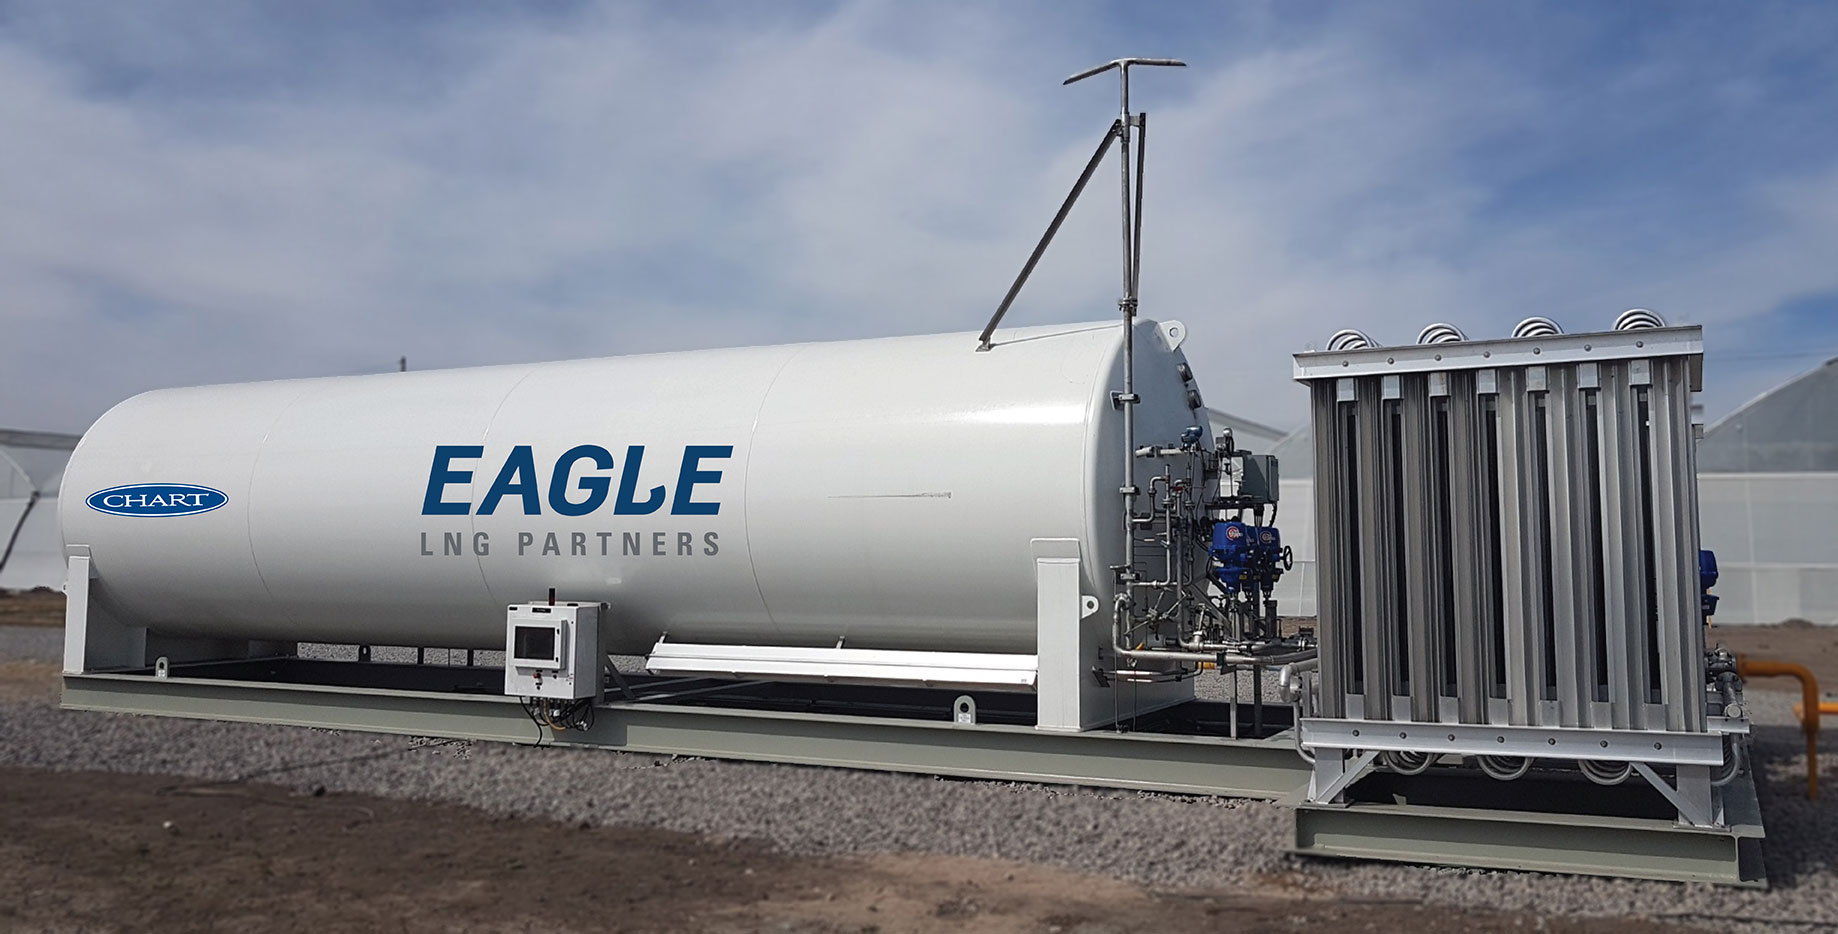 Image of a large, horizontally positioned LNG cylinder storage tank, painted bright white with the Eagel LNG logo in dark blue on the side